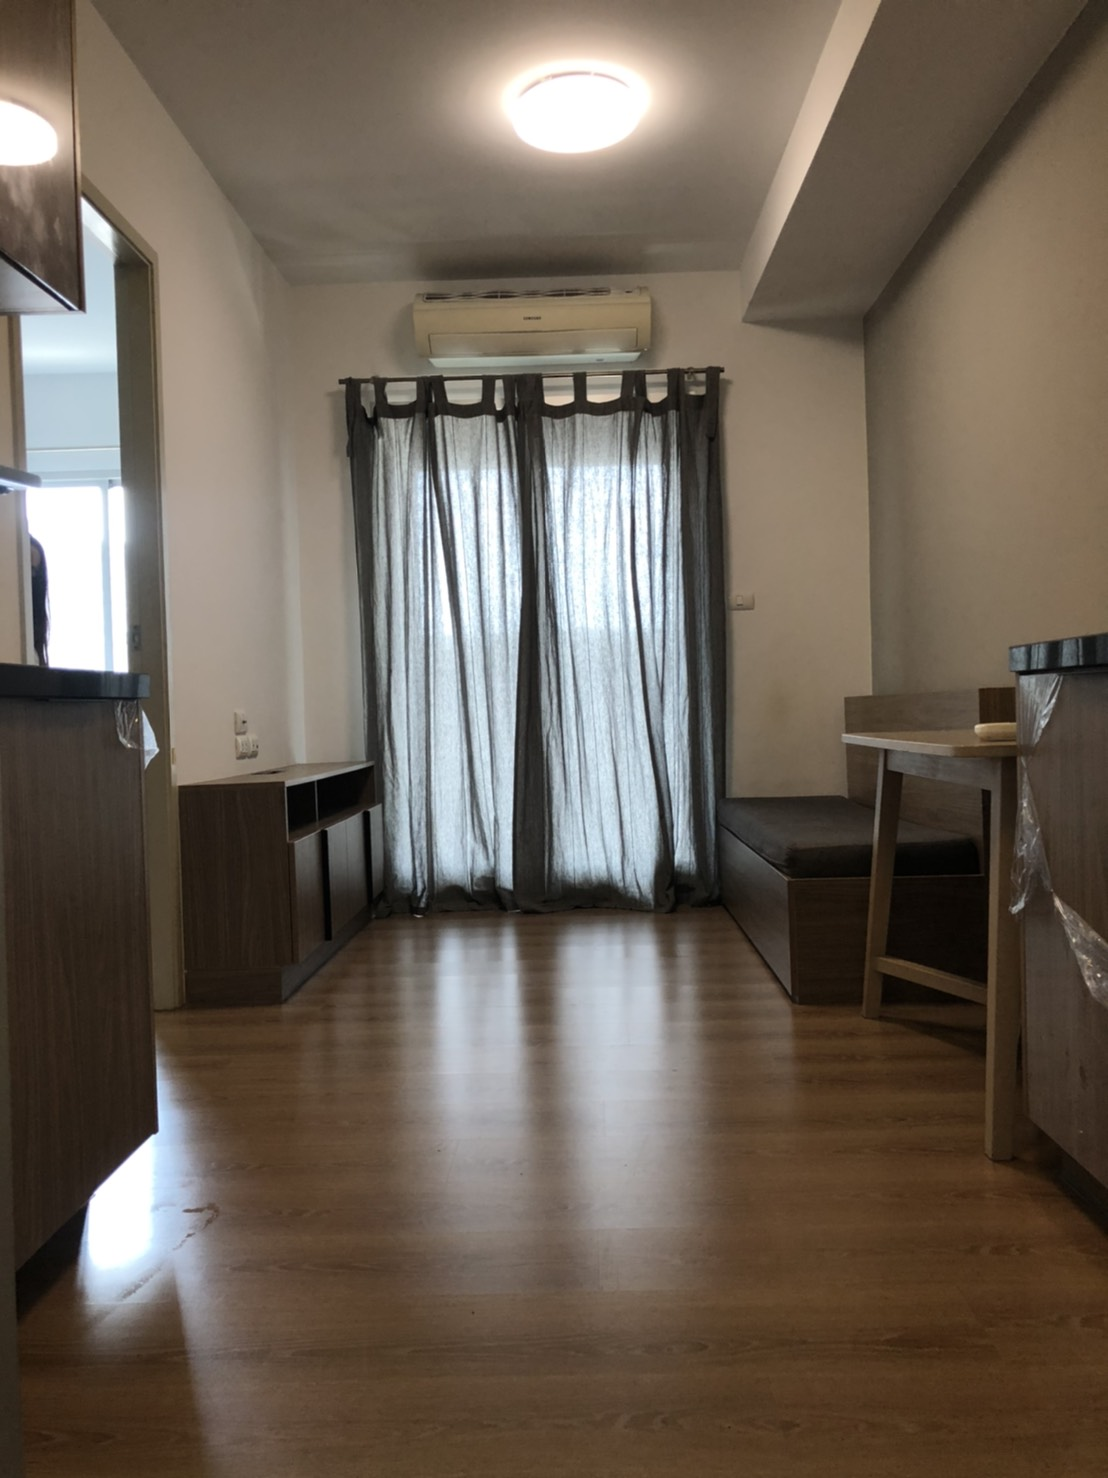 For RentCondoKasetsart, Ratchayothin : Condo for rent at cheap price, close to Kasetsart University fence Ready to move in immediately